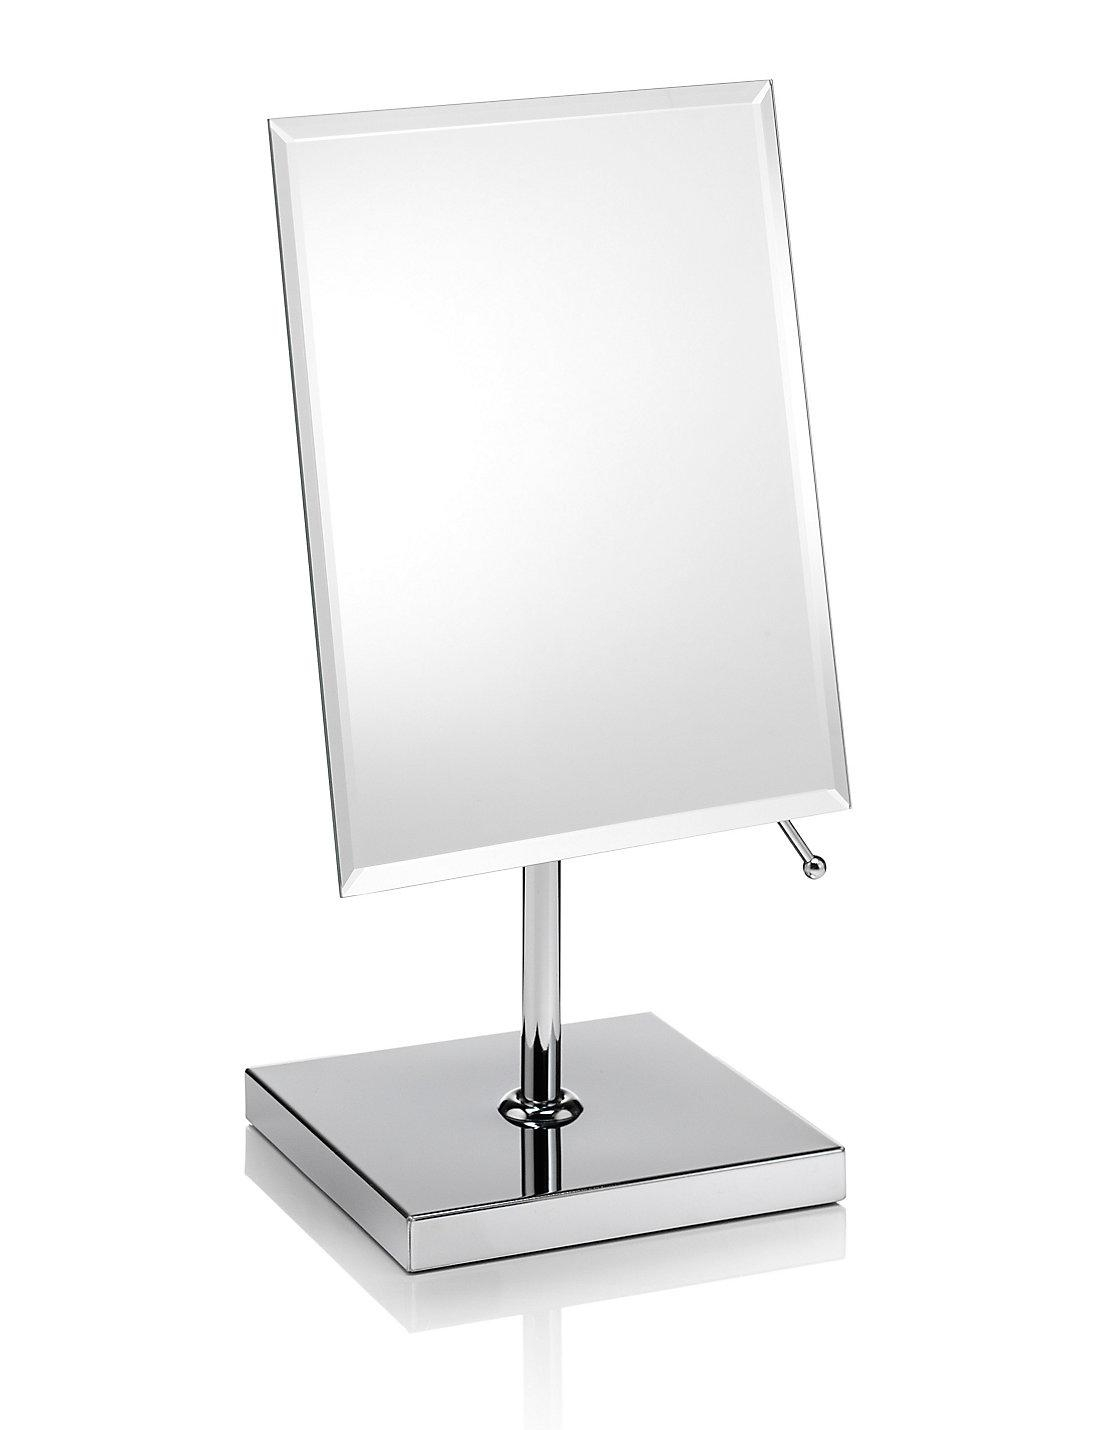 Awesome Free Standing Small Bathroom Mirrors 81 With Free Standing In Small Free Standing Mirrors (Image 1 of 20)